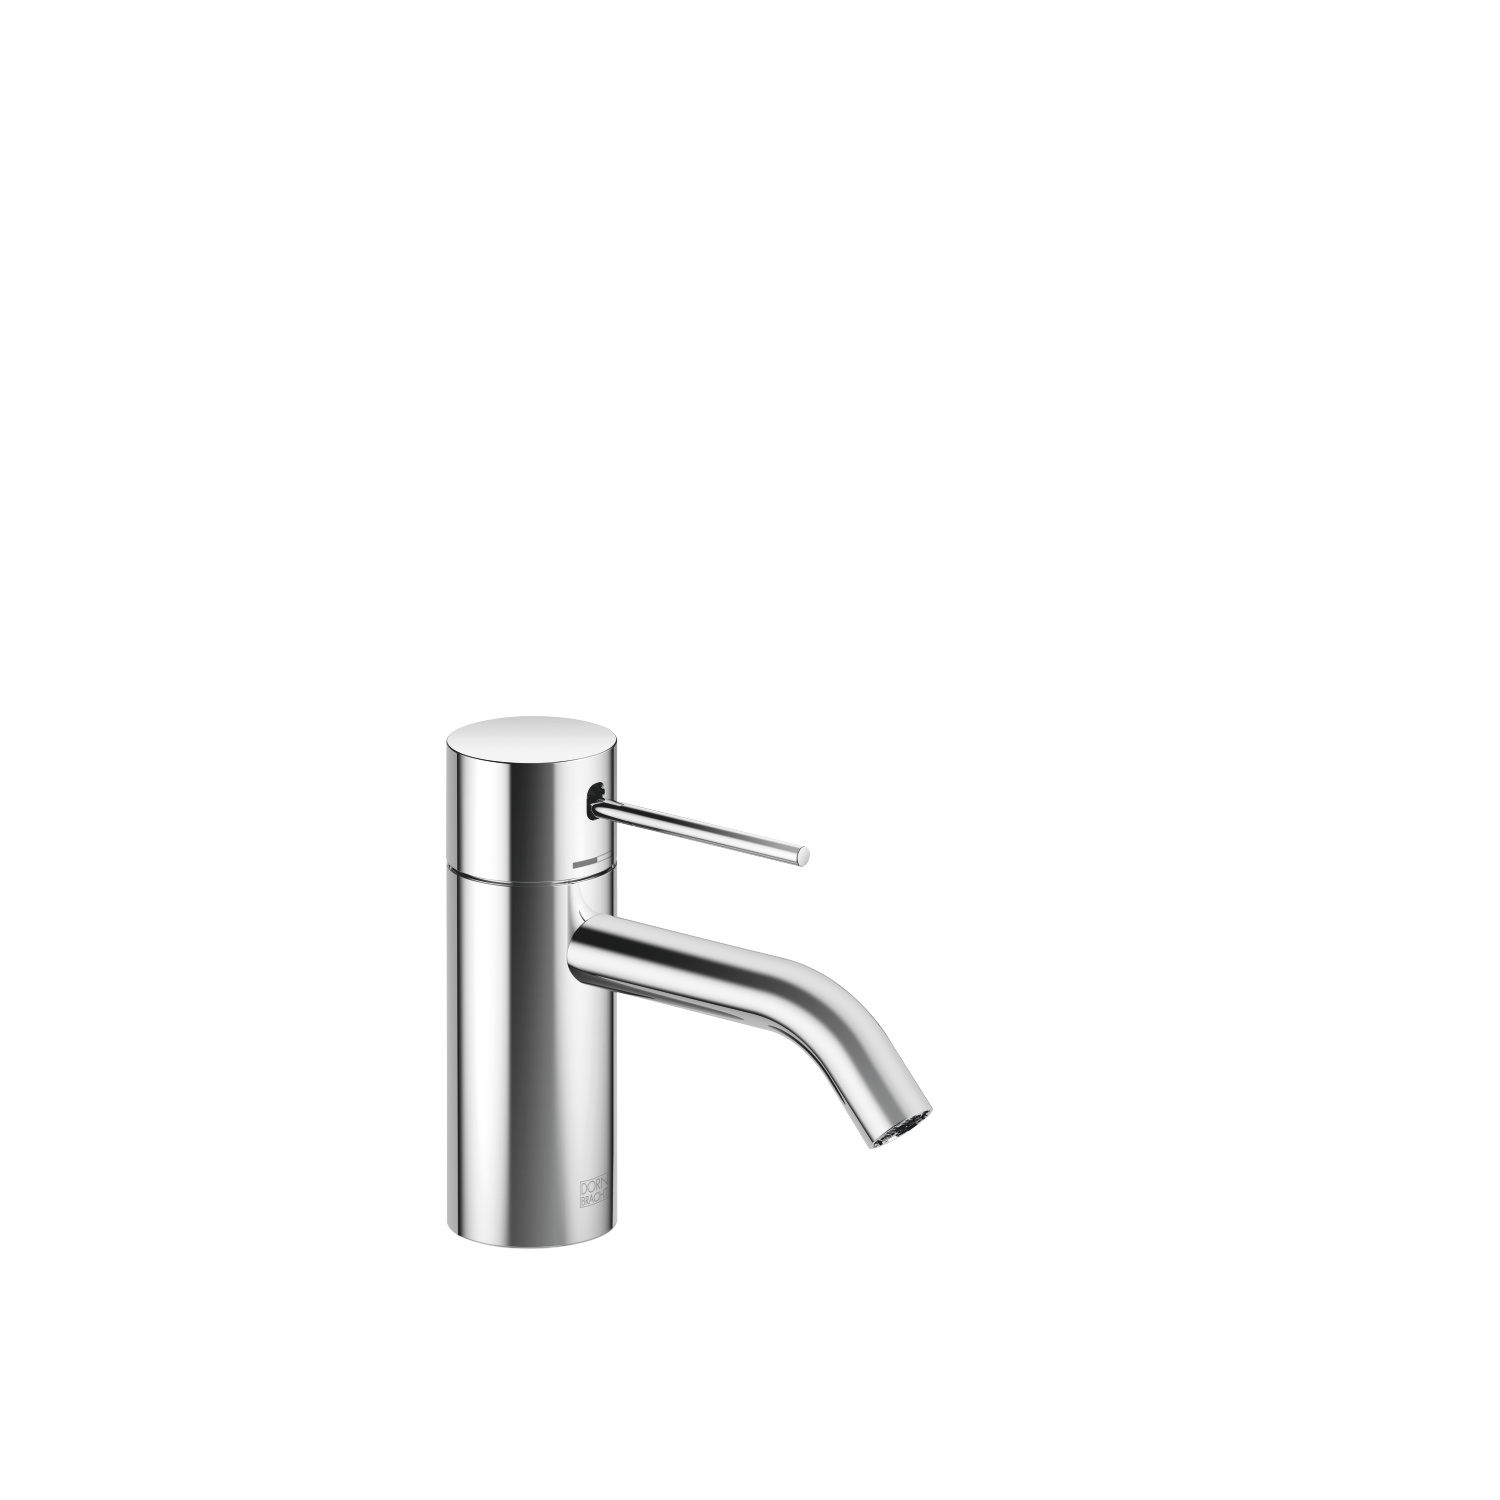 META SLIM Single-lever lavatory mixer without drain - polished chrome - 33 526 662-00 0010